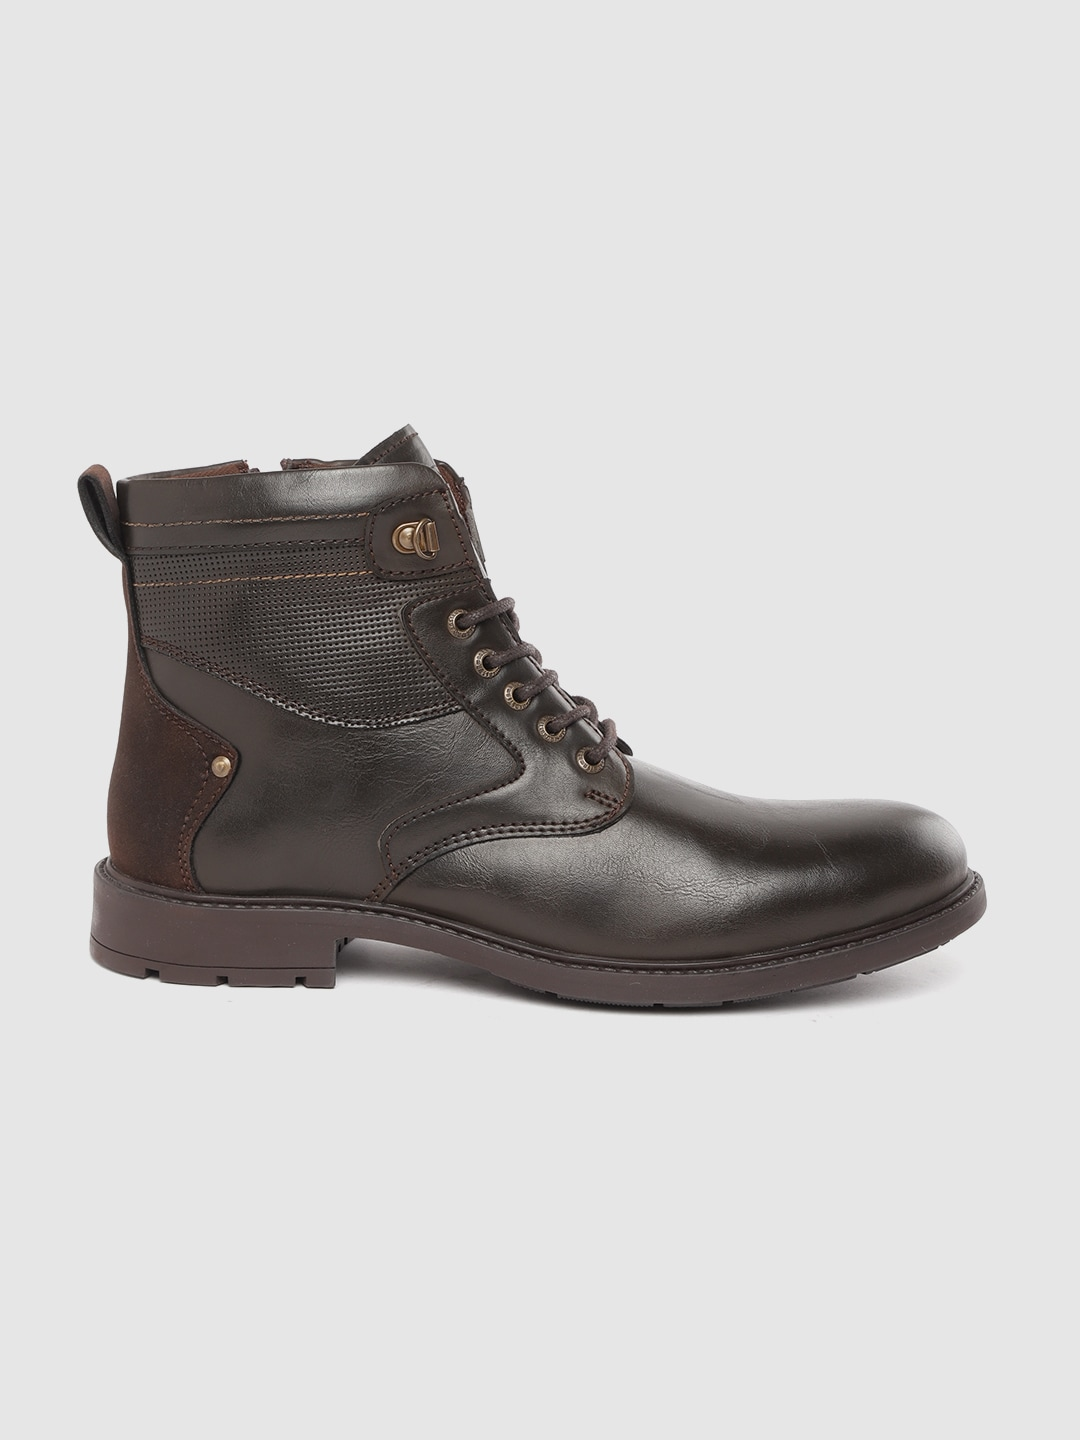 Roadster Men Coffee Brown Solid Mid-Top Flat Boots